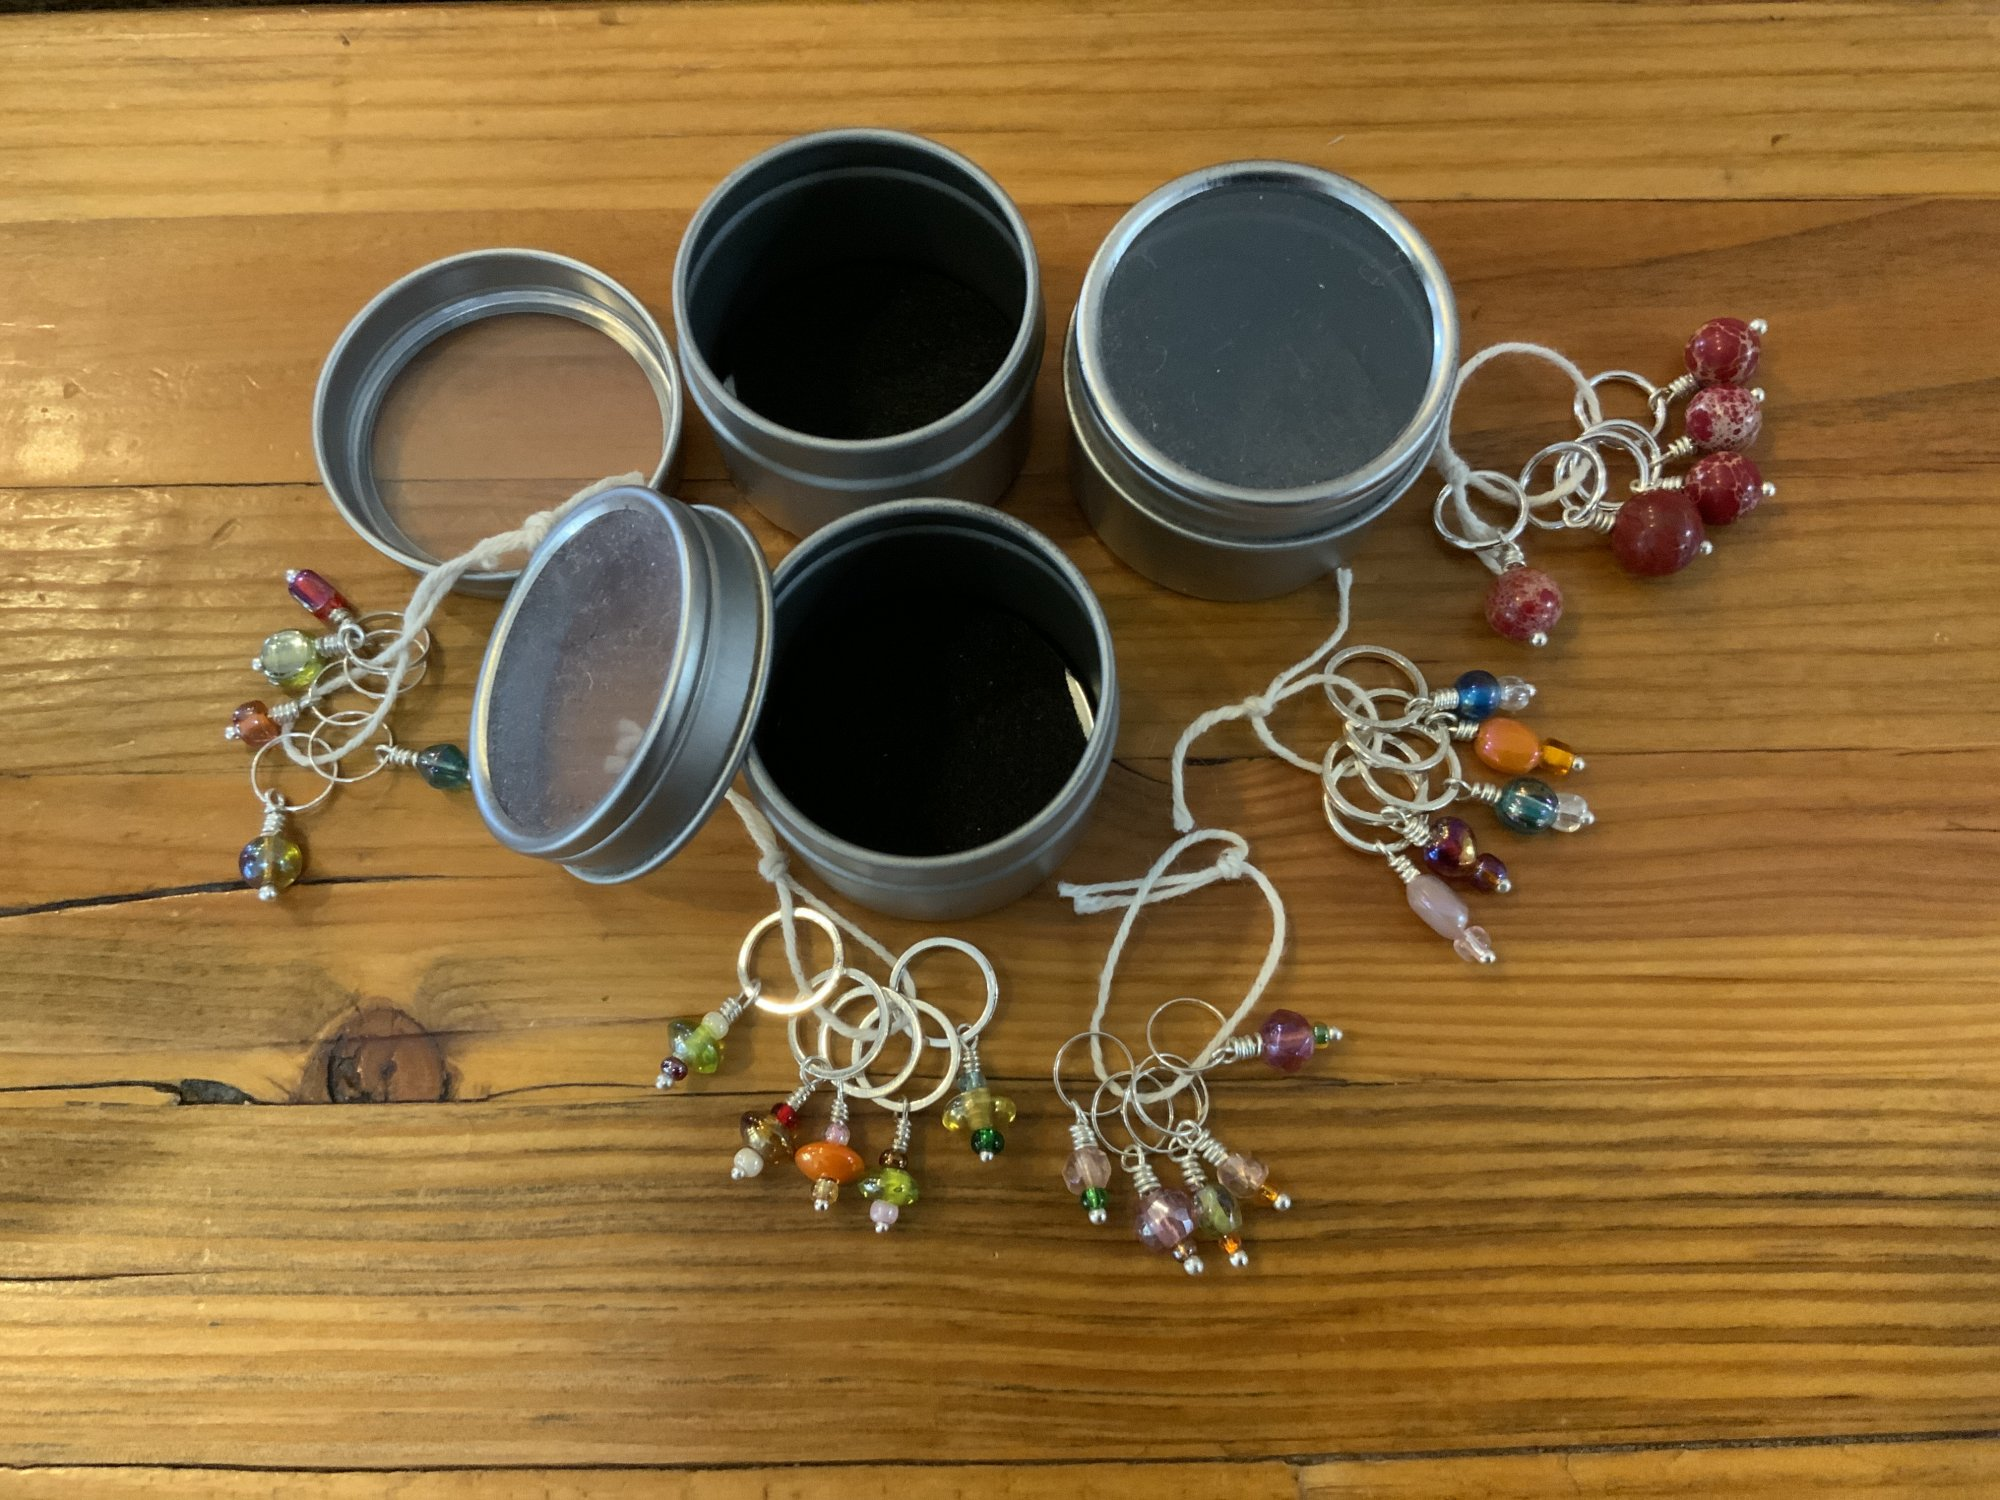 Black Sheep Creamery Stitch Markers